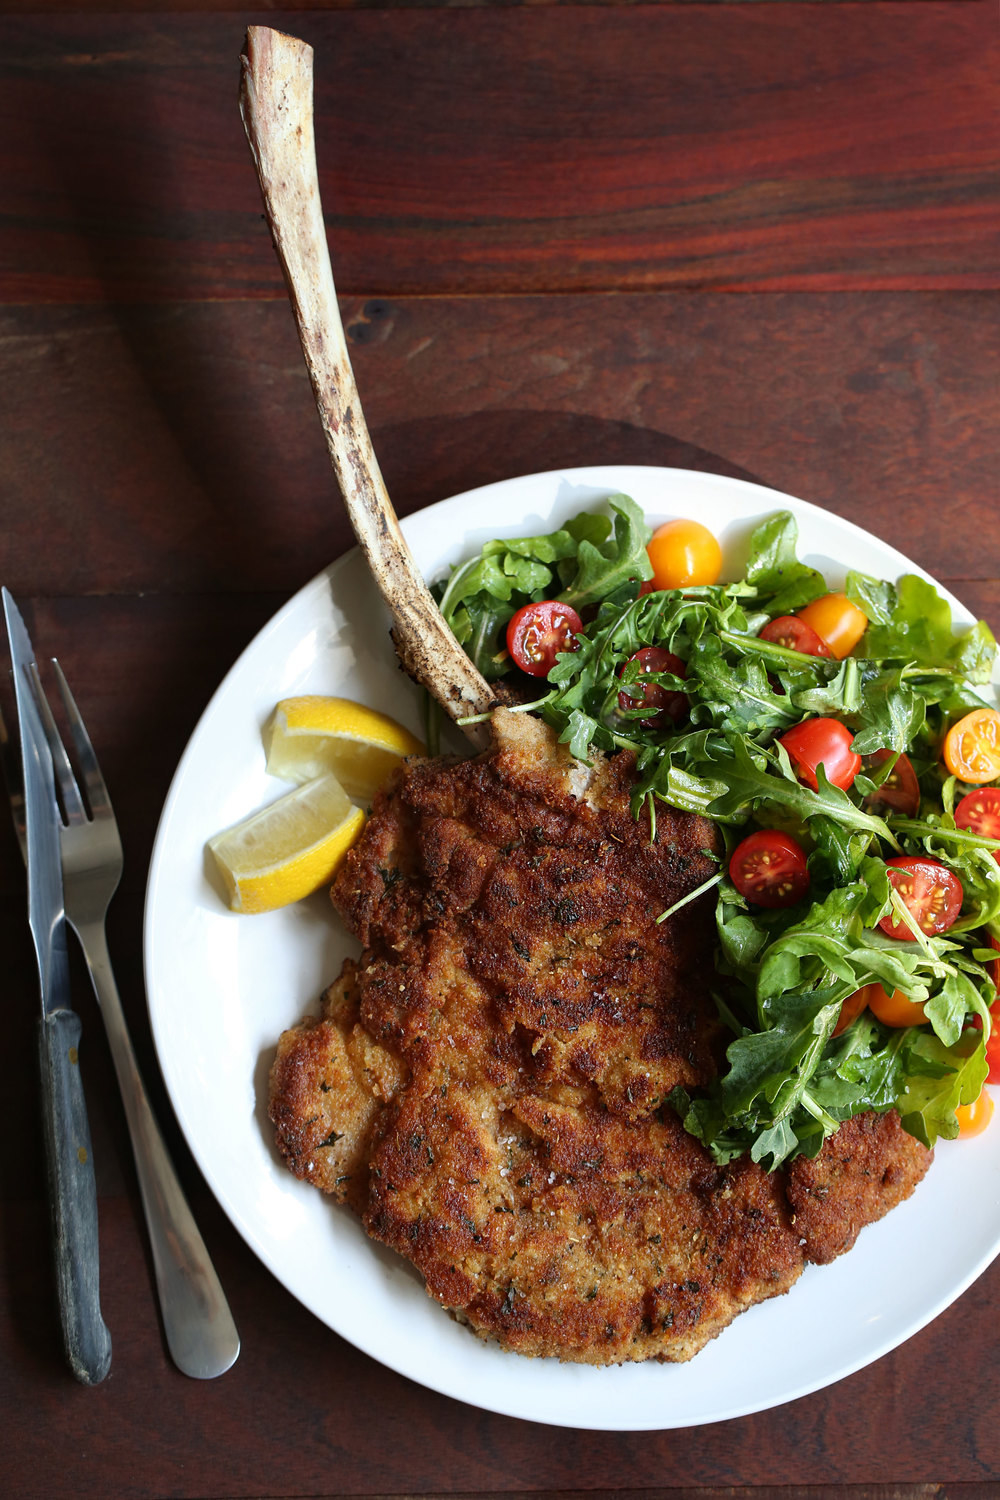 Serve this crispy, thinly pounded veal cutlet with a simple arugula and tomato salad for a restaurant-quality meal. Get the recipe here.